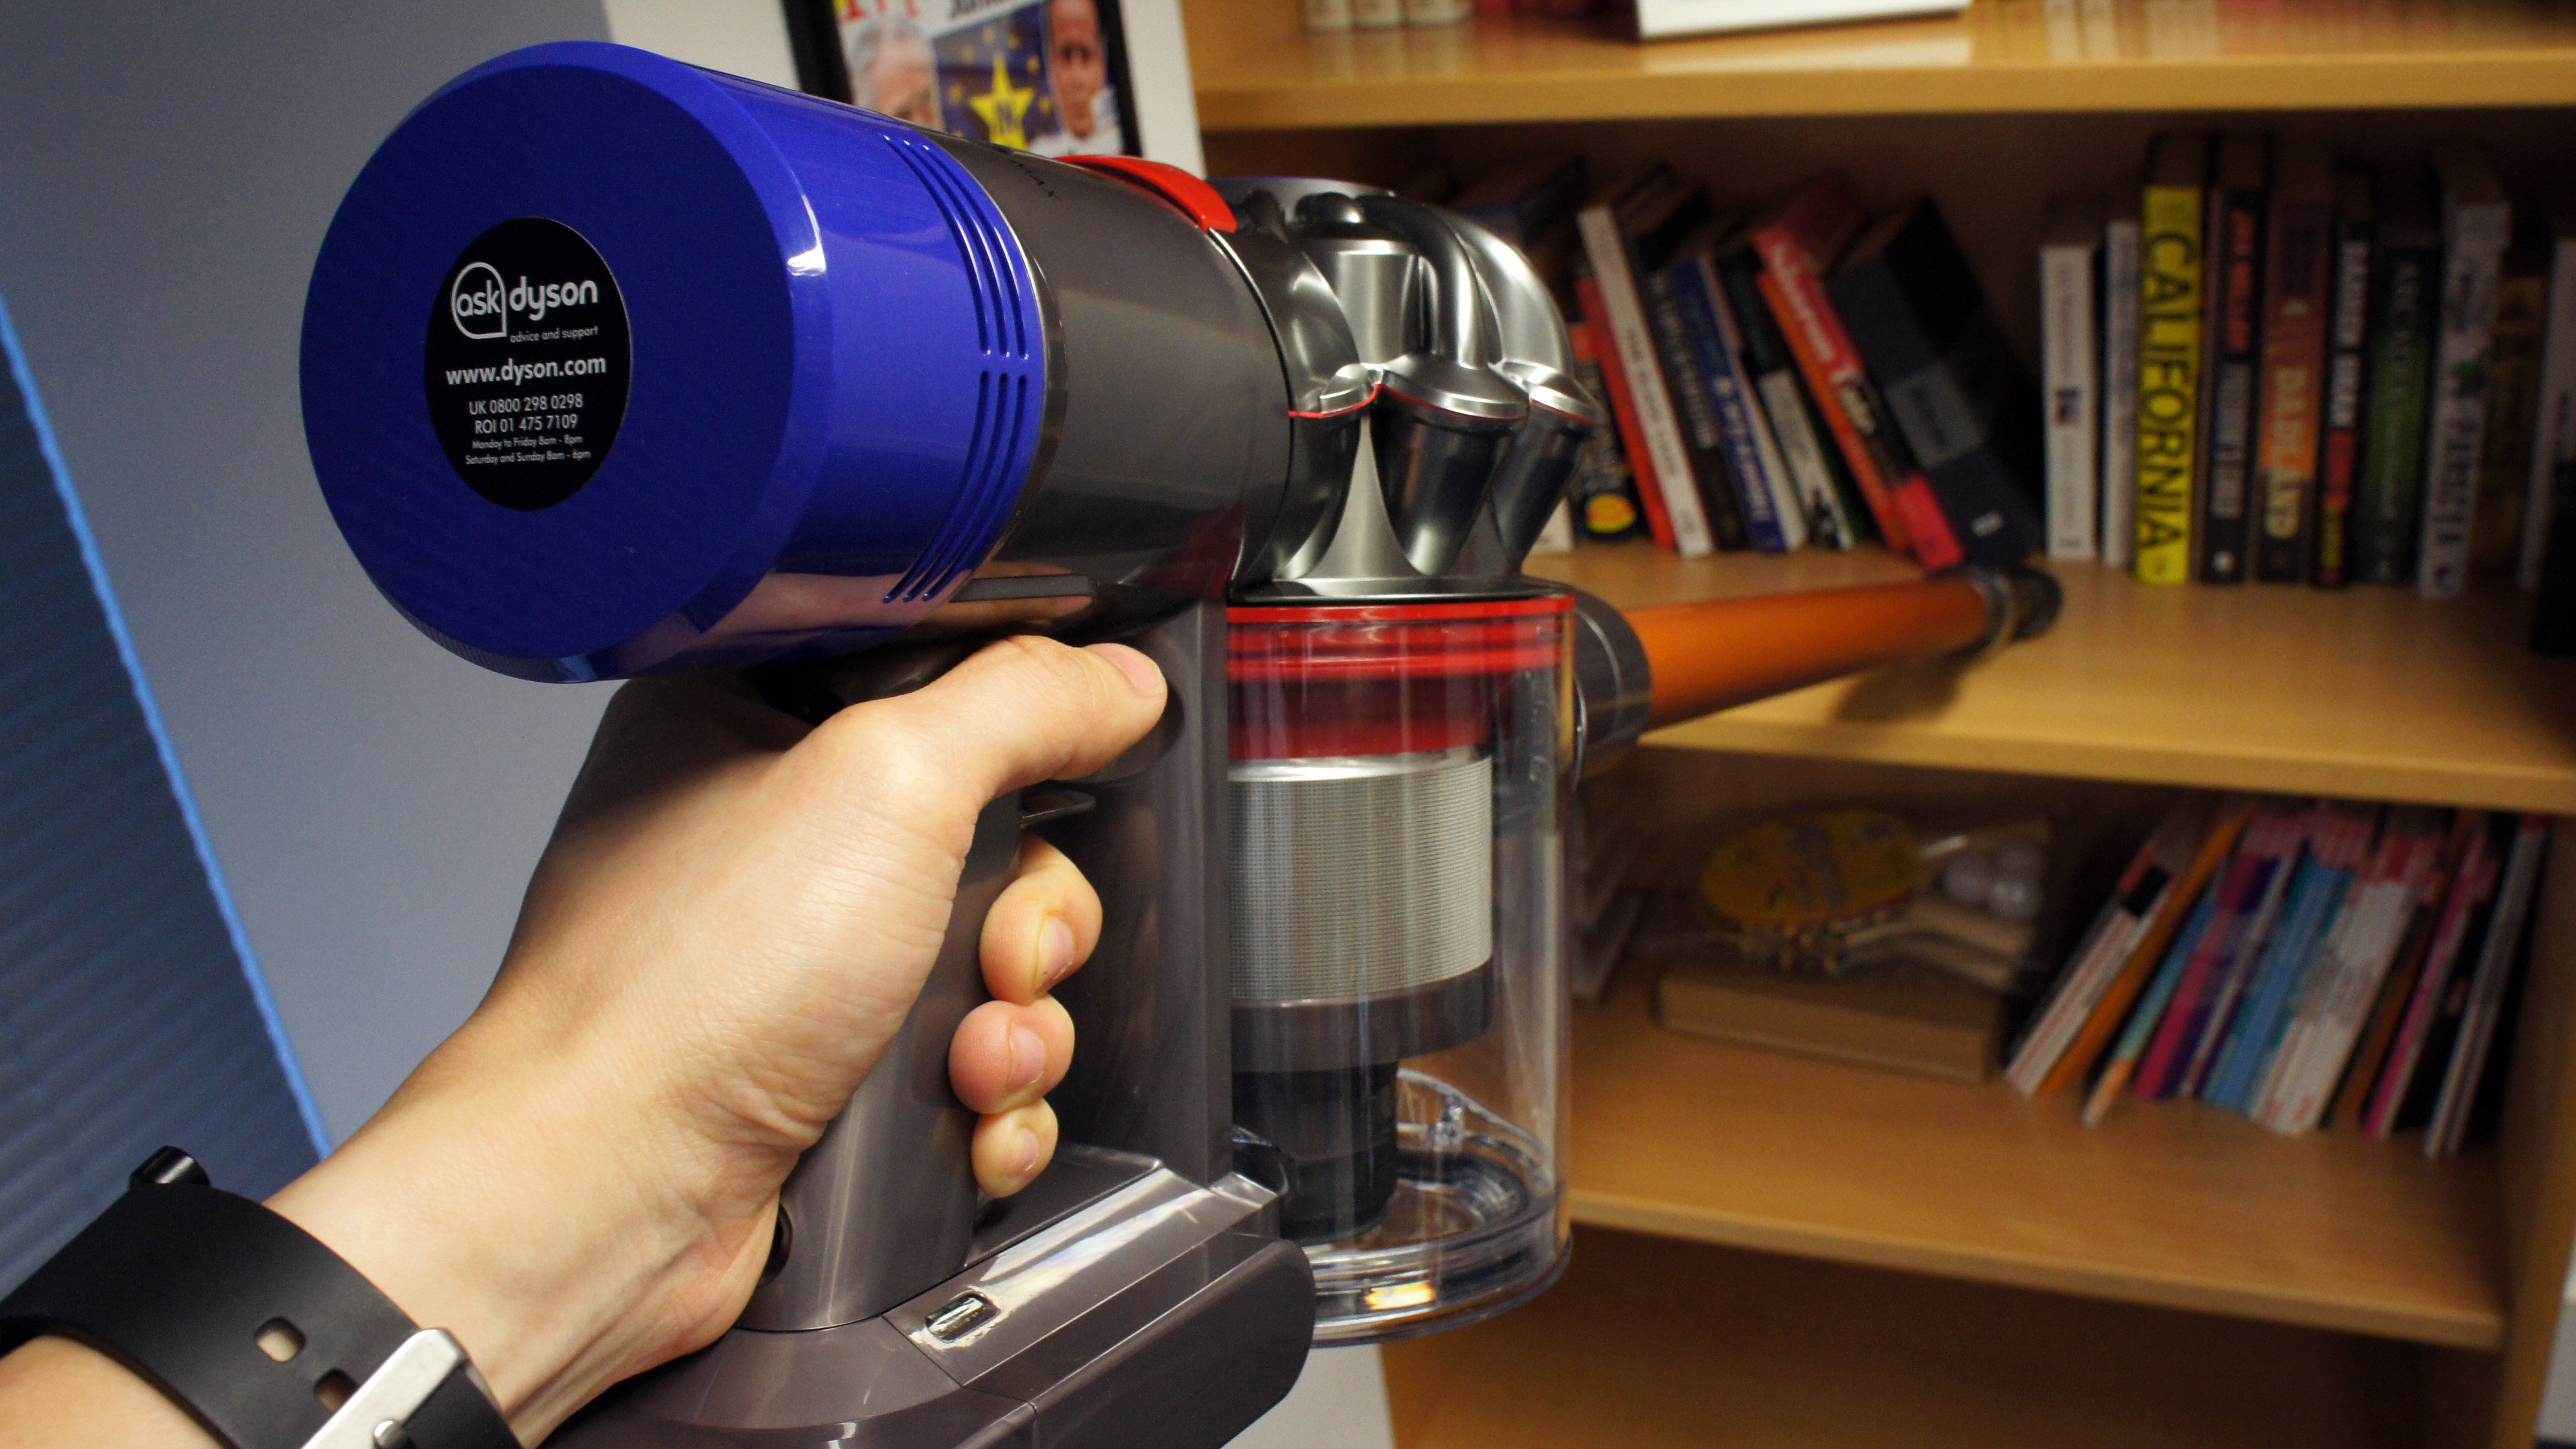 Dyson V8 Absolute review: Still a cracking cordless vacuum